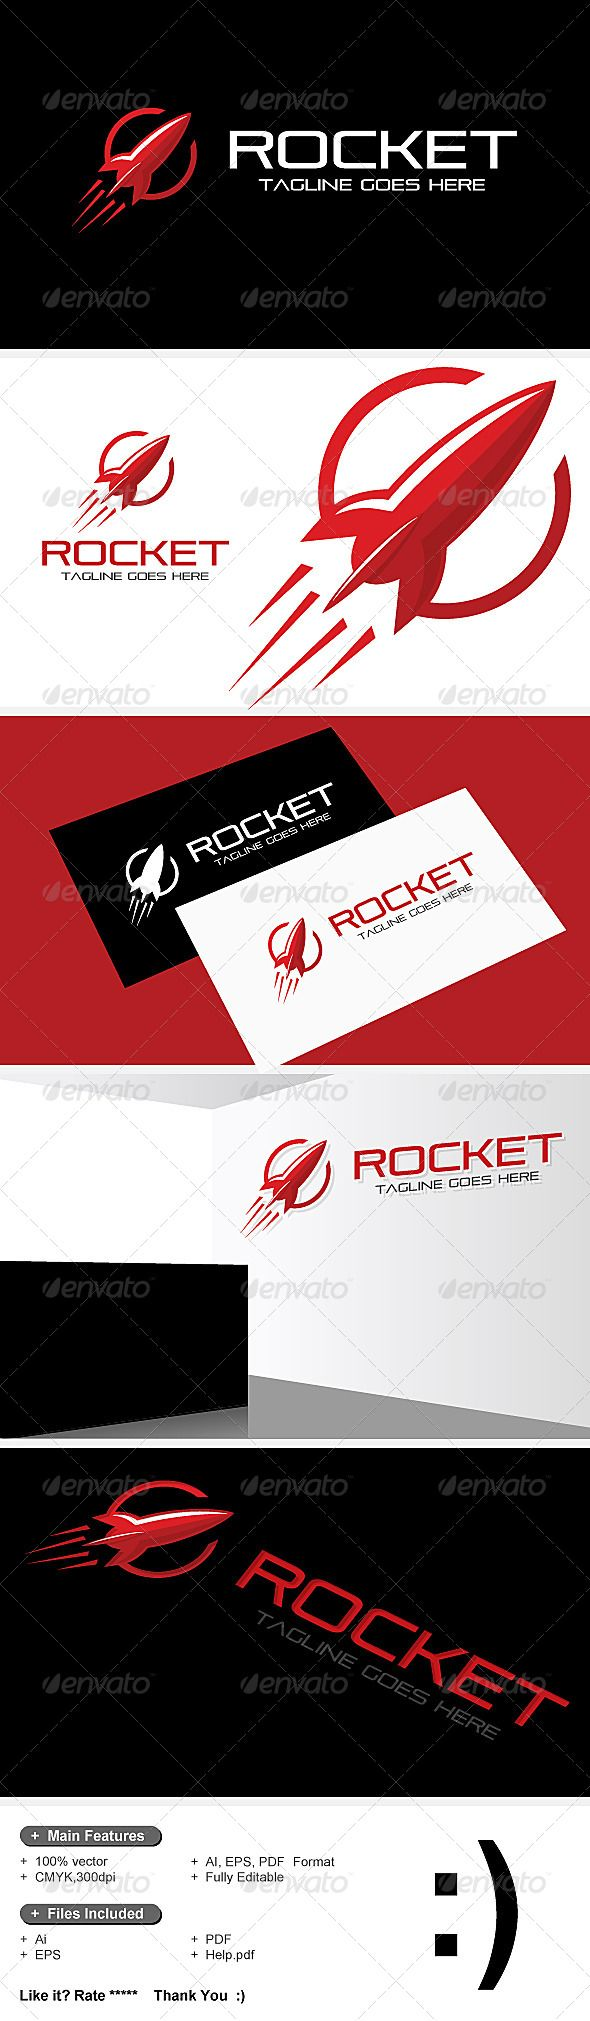 Rocket Logo — Vector EPS #rocket #red • Available here → https://graphicriver.net/item/rocket-logo/7529049?ref=pxcr